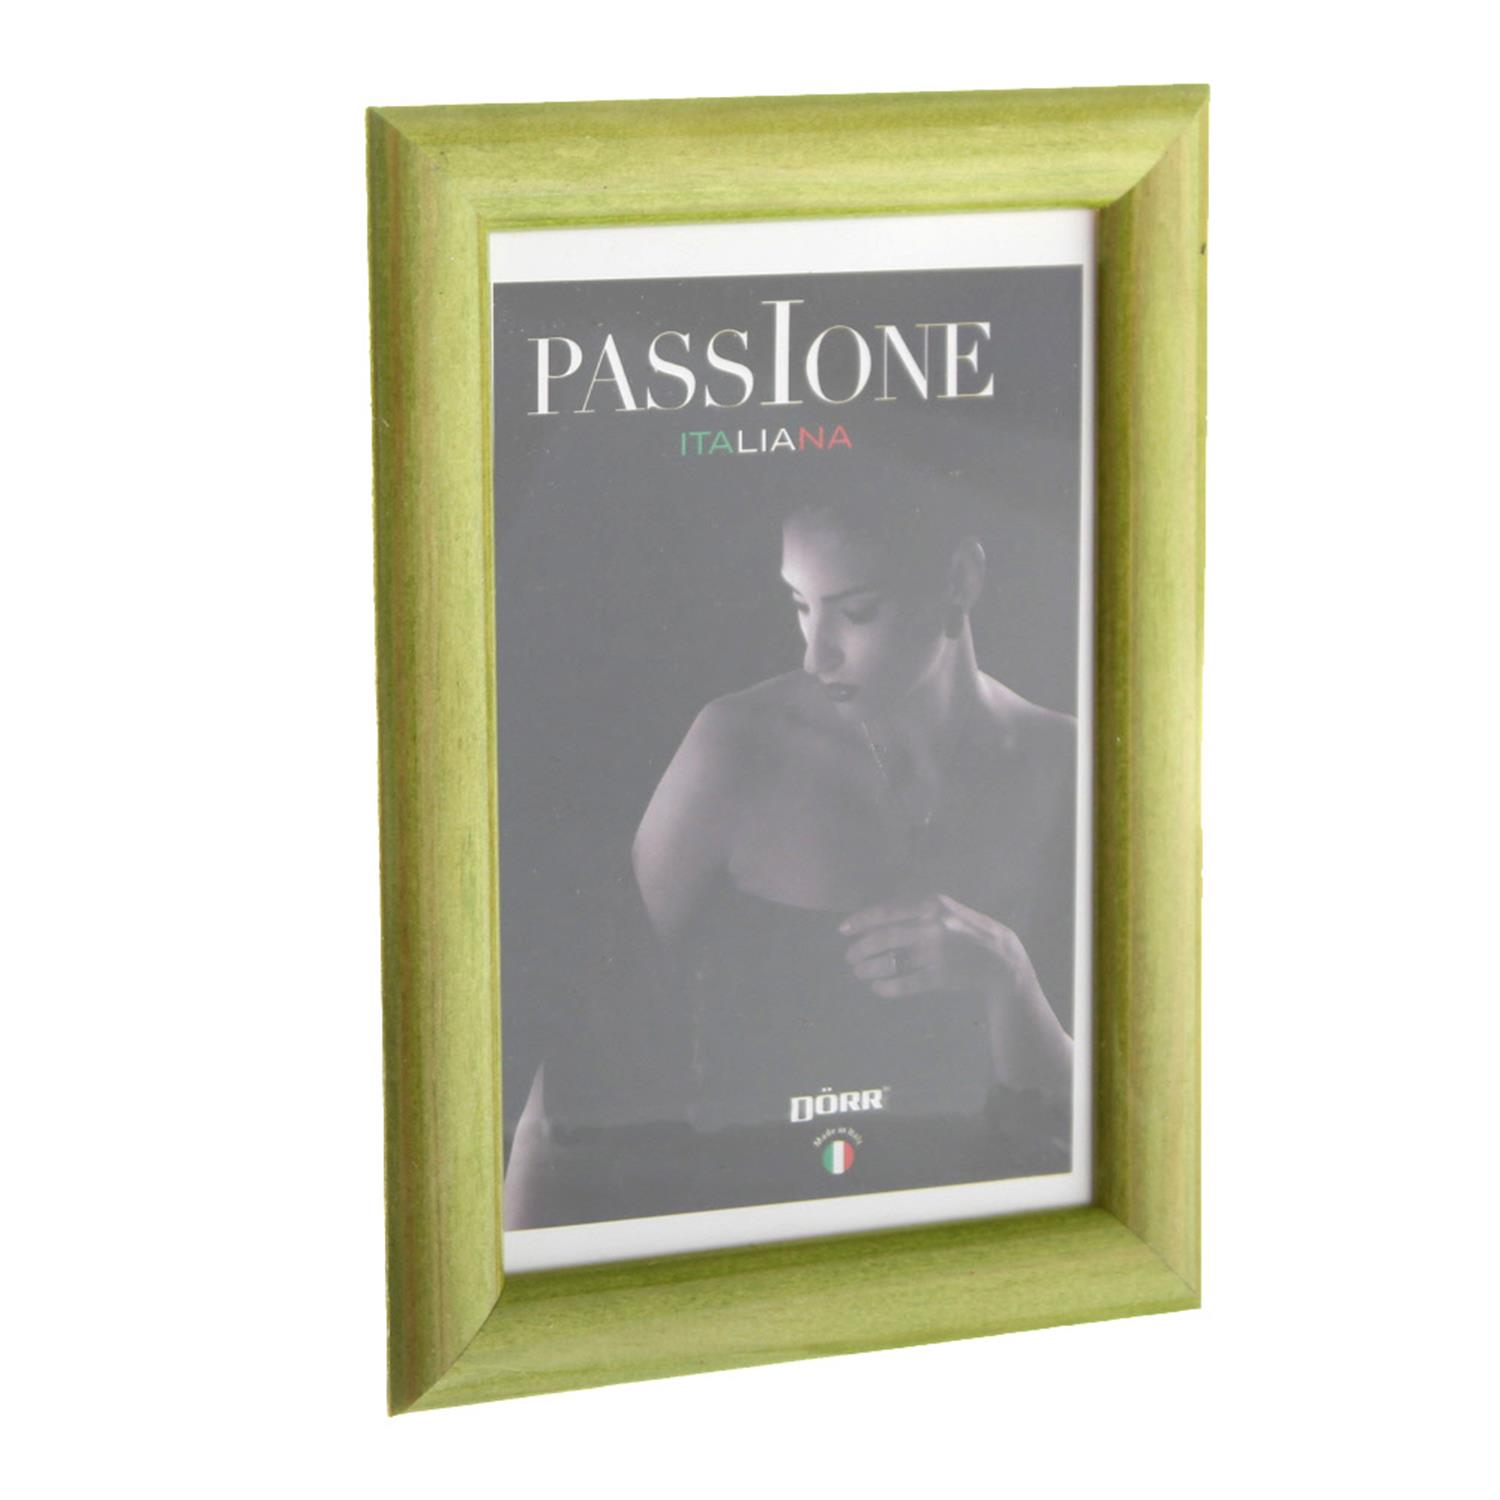 Dorr Guidi Glossy Green Wooden 8x6 Photo Frame